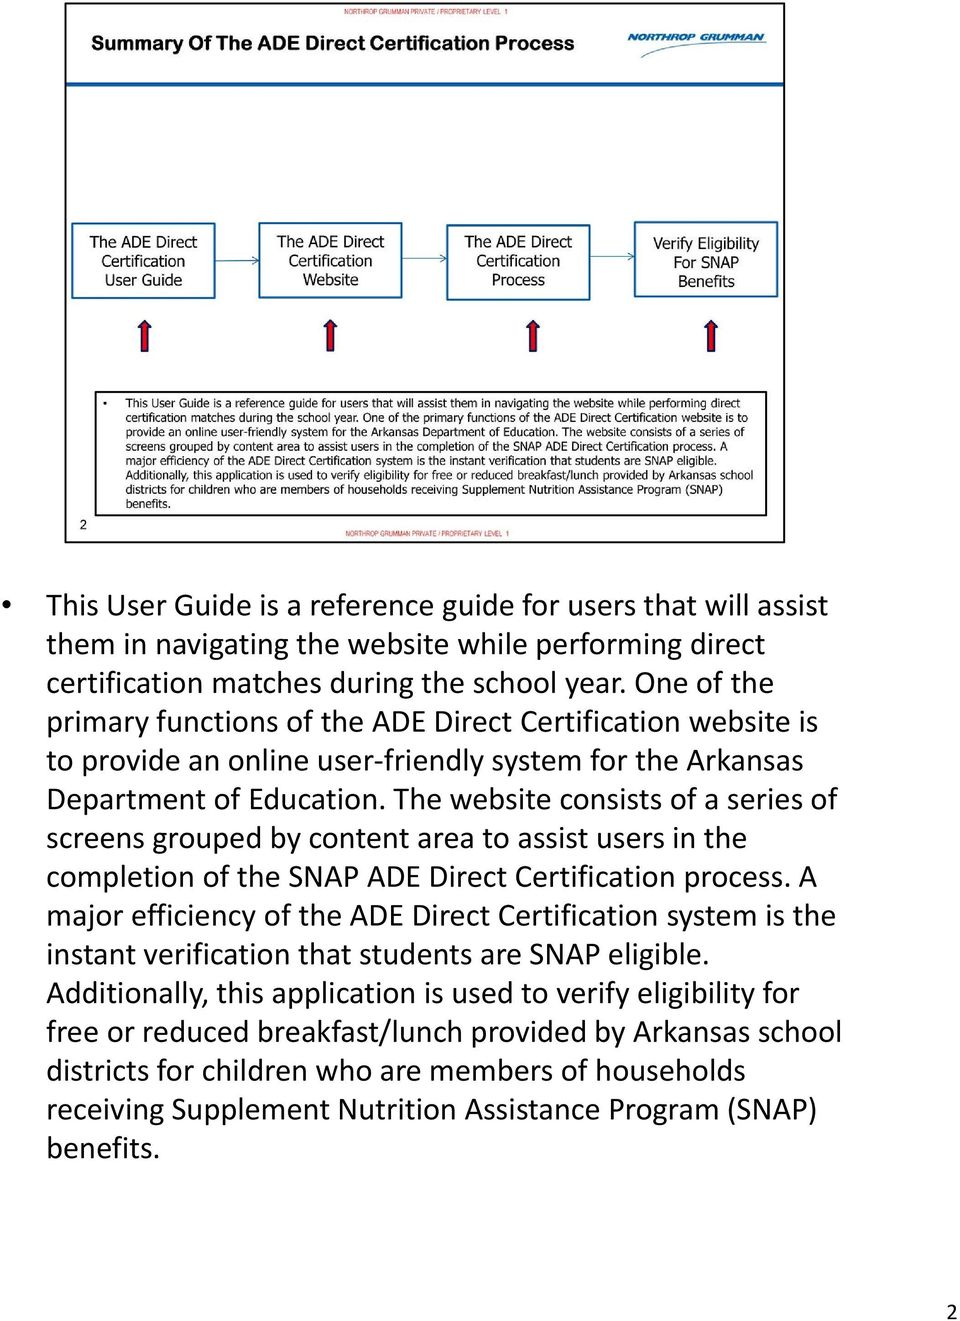 The website consists of a series of screens grouped by content area to assist users in the completion of the SNAP ADE Direct Certification process.